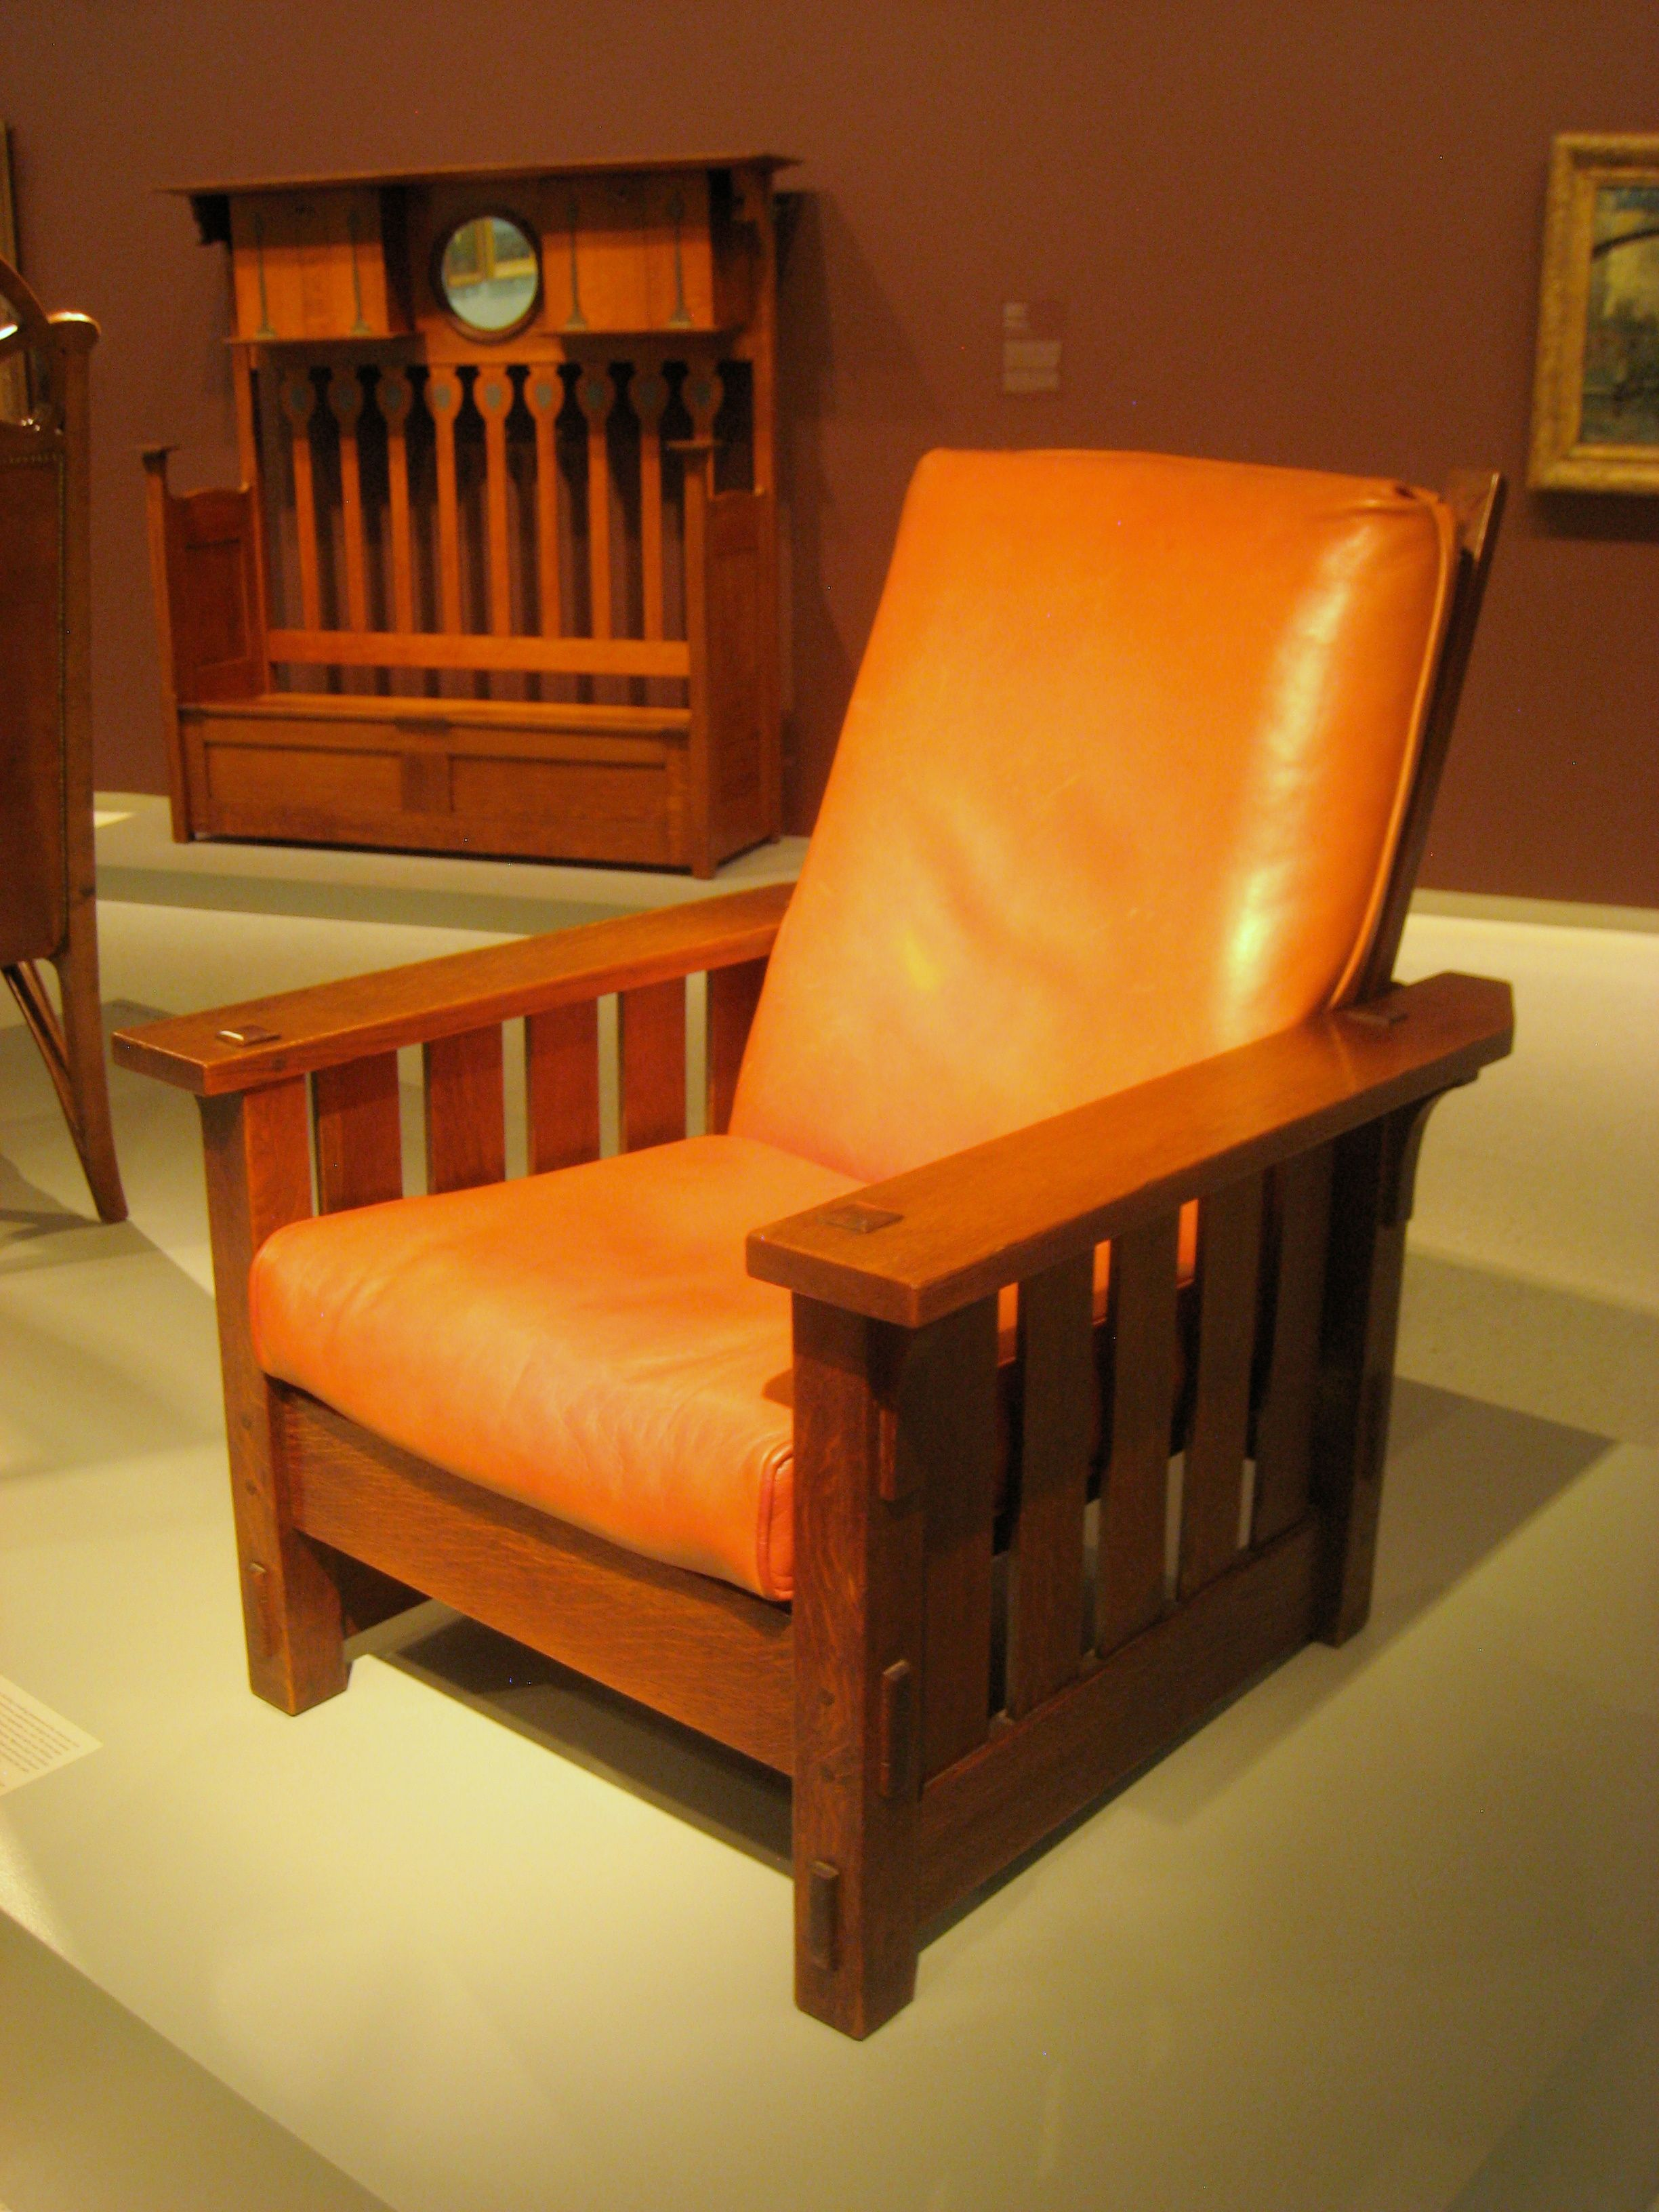 Arts and crafts furniture chair - Find This Pin And More On Arts Crafts Morris Chair Antique Furniture